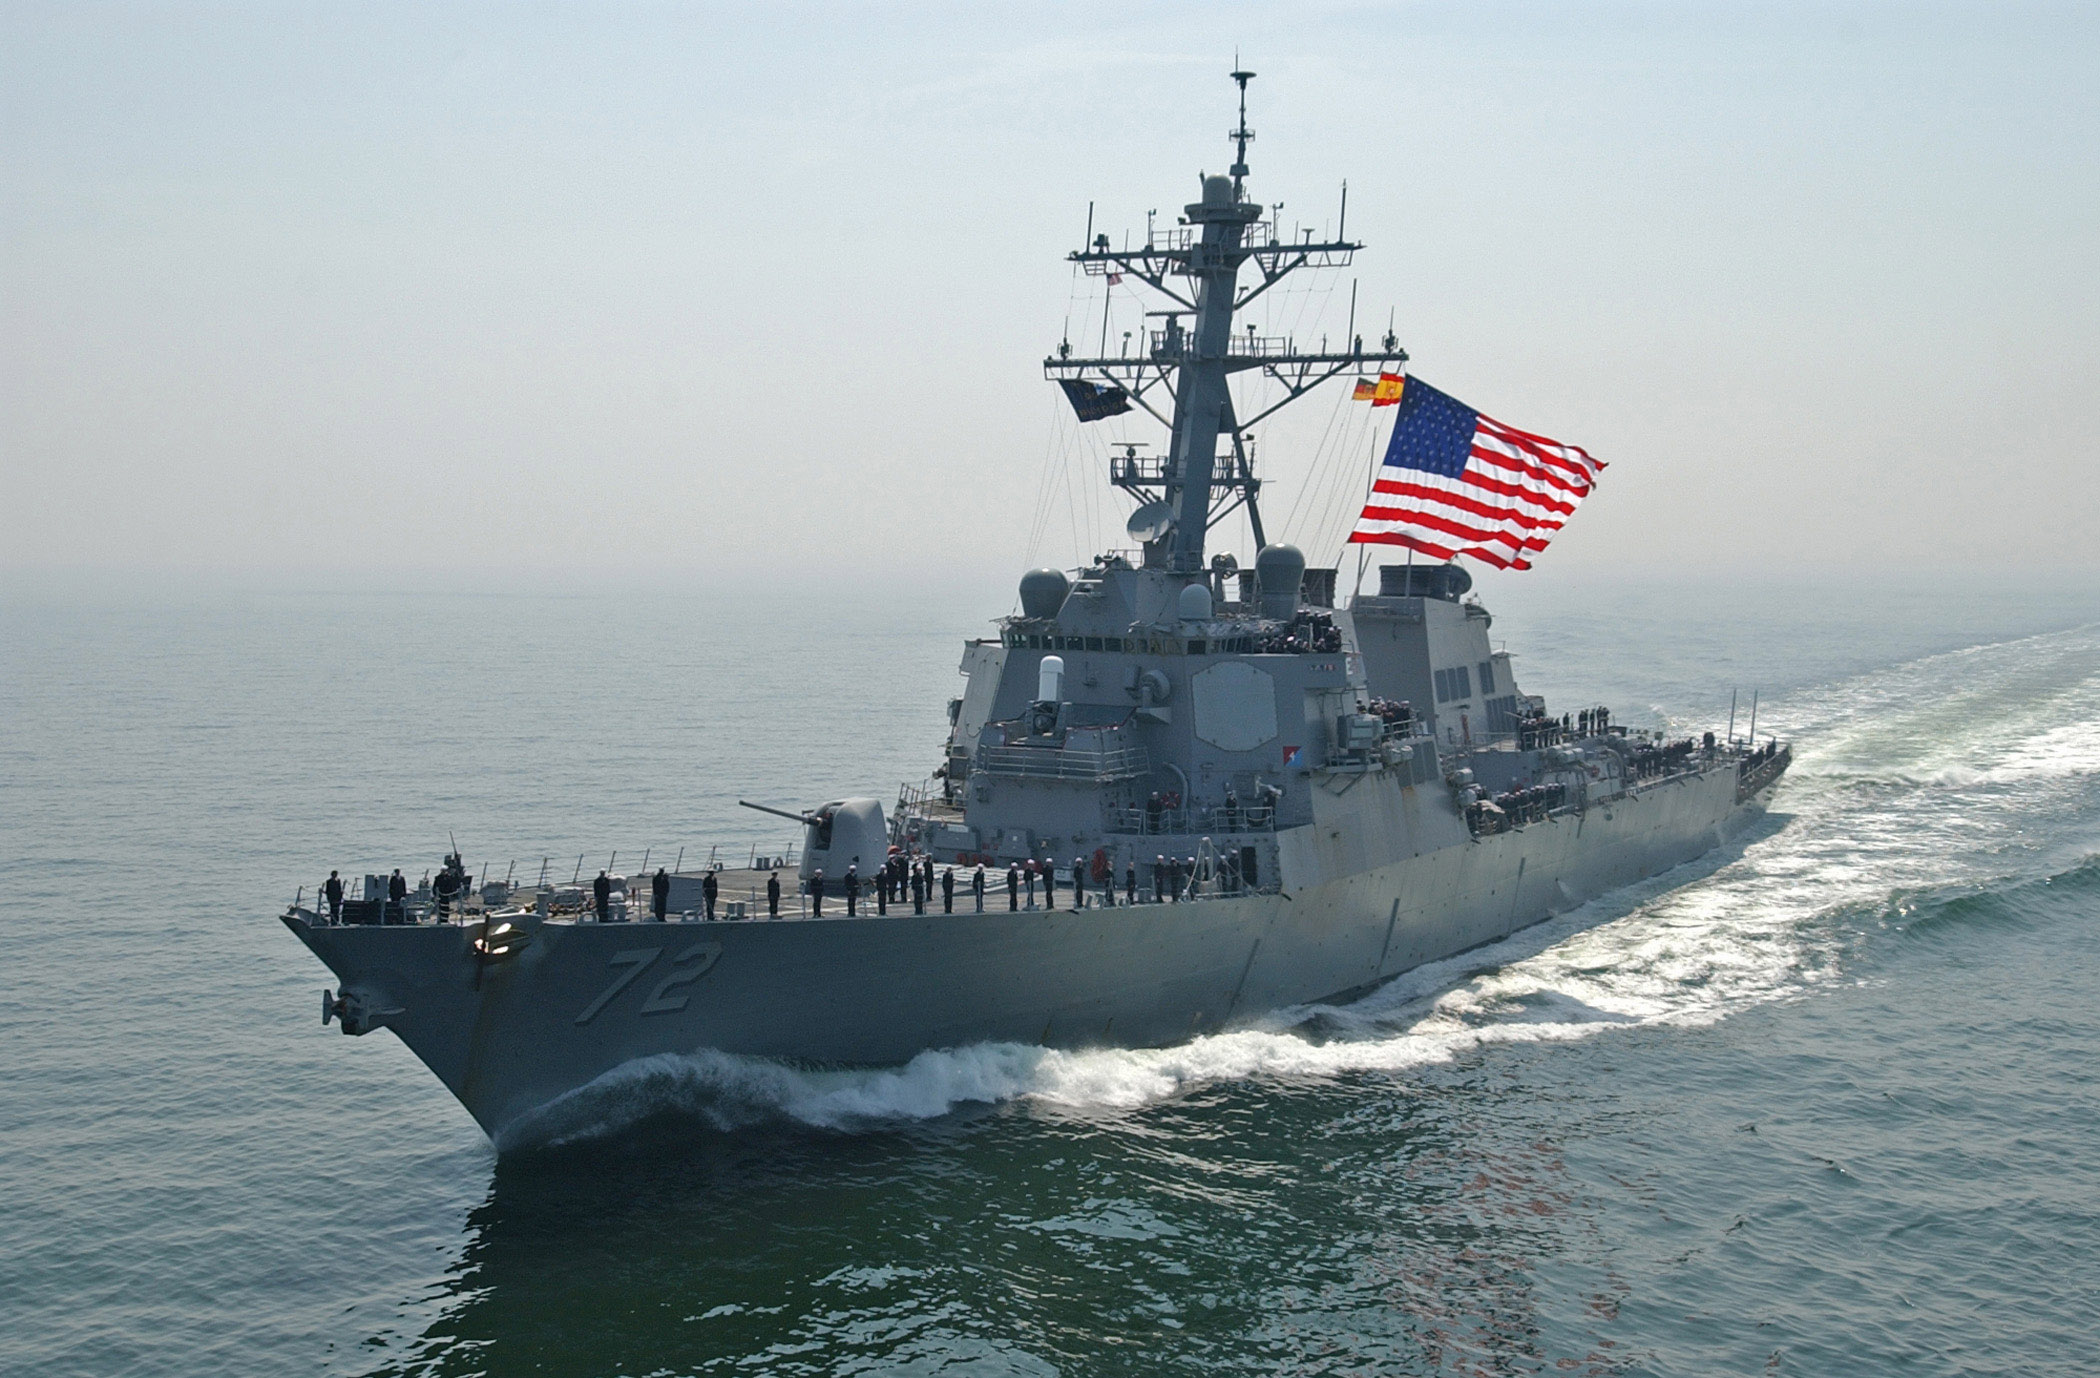 U.S. Navy Destroyer Fires Warning Shots At Iranian Patrol Ships